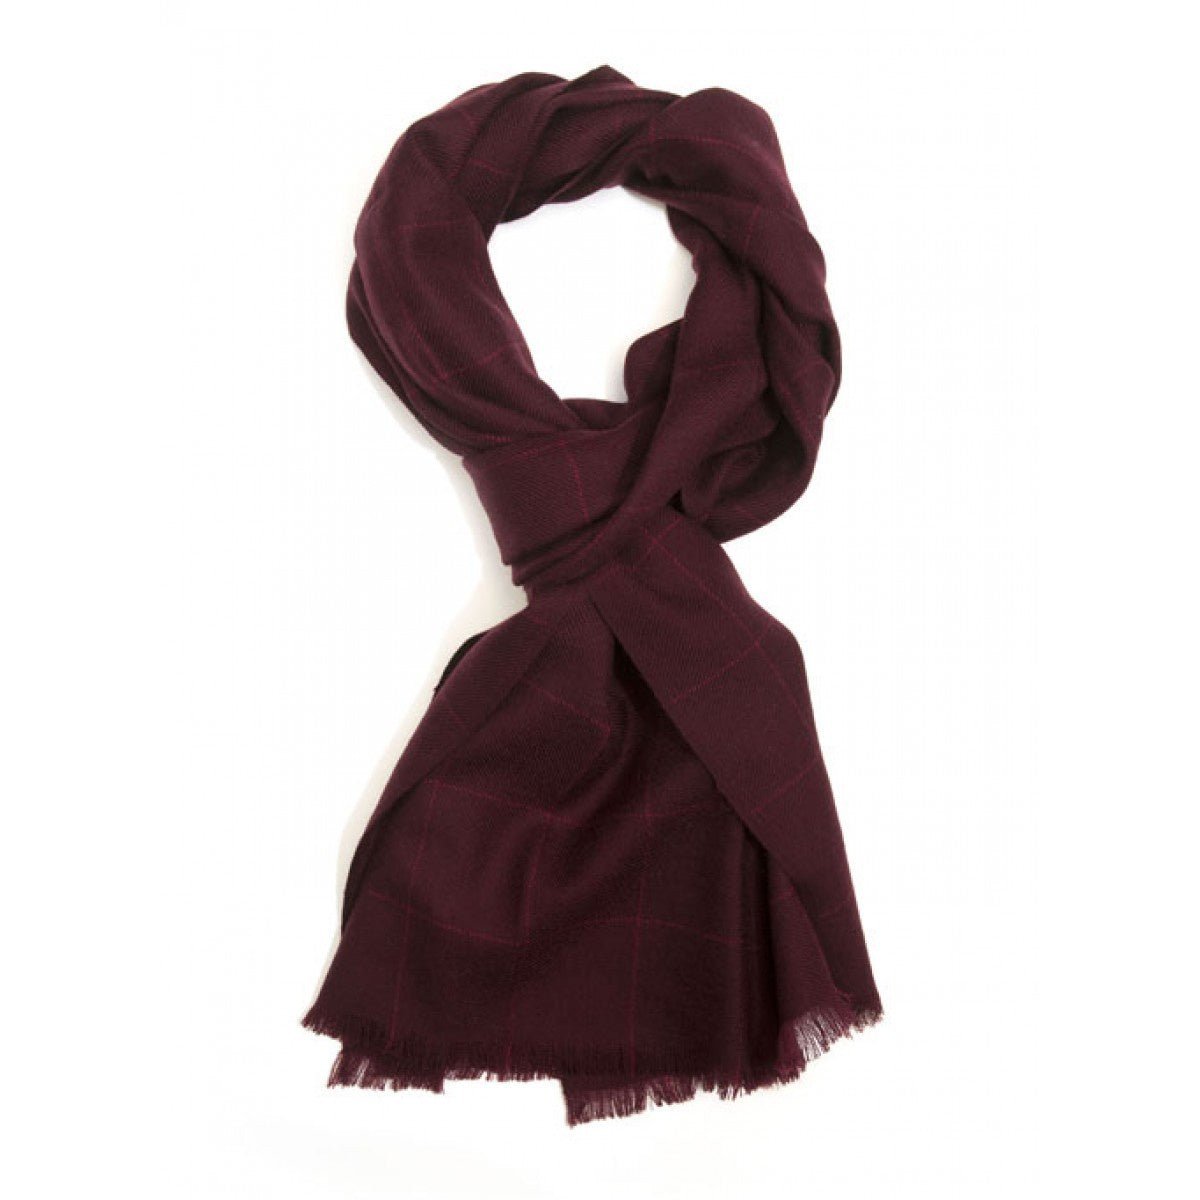 Parc City Boot Co. - Micro Wool Scarf in Burgundy Windowpane Check